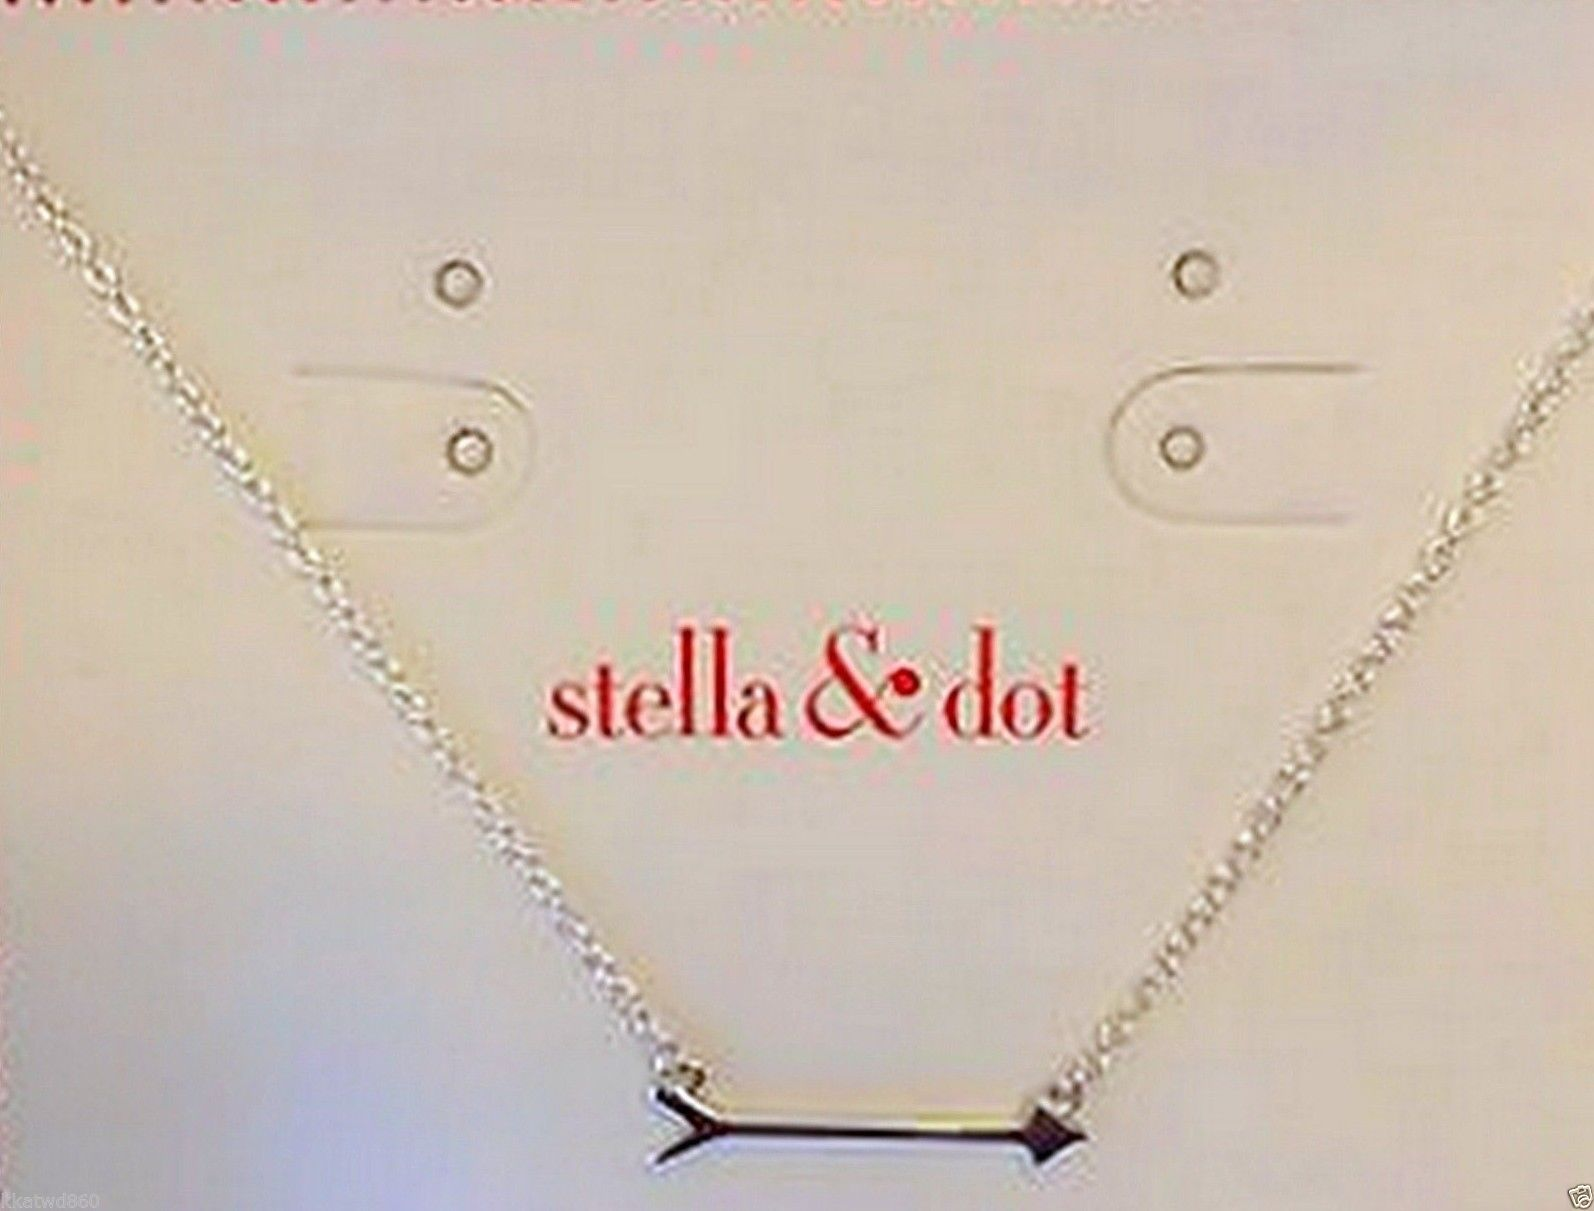 On the Mark Sterling SILVER ARROW NECKLACE with Tag on side of box